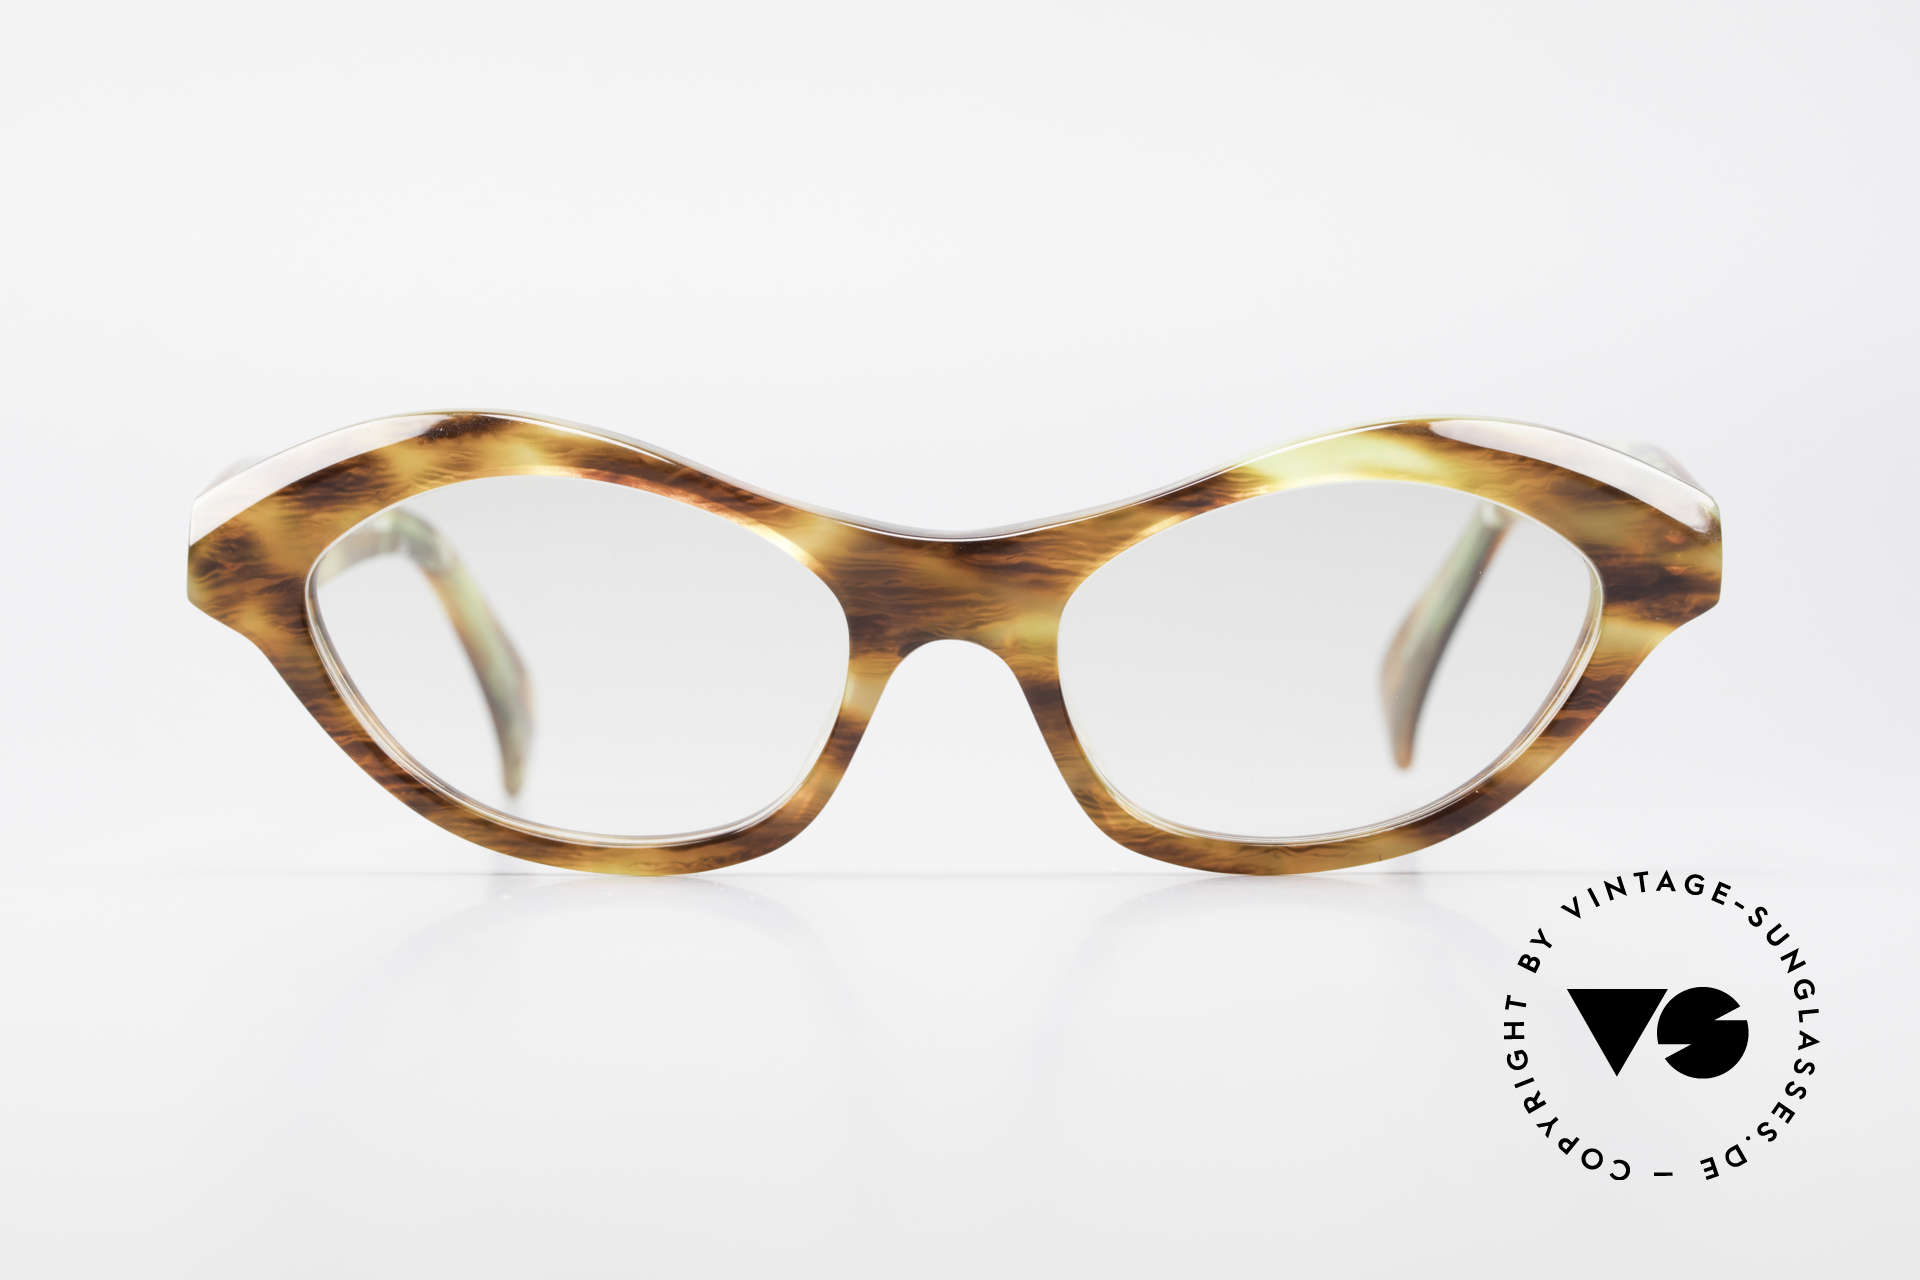 Alain Mikli 2112 / 1036 80's Cateye Designer Shades, lovely combination of colors & frame pattern, Made for Women